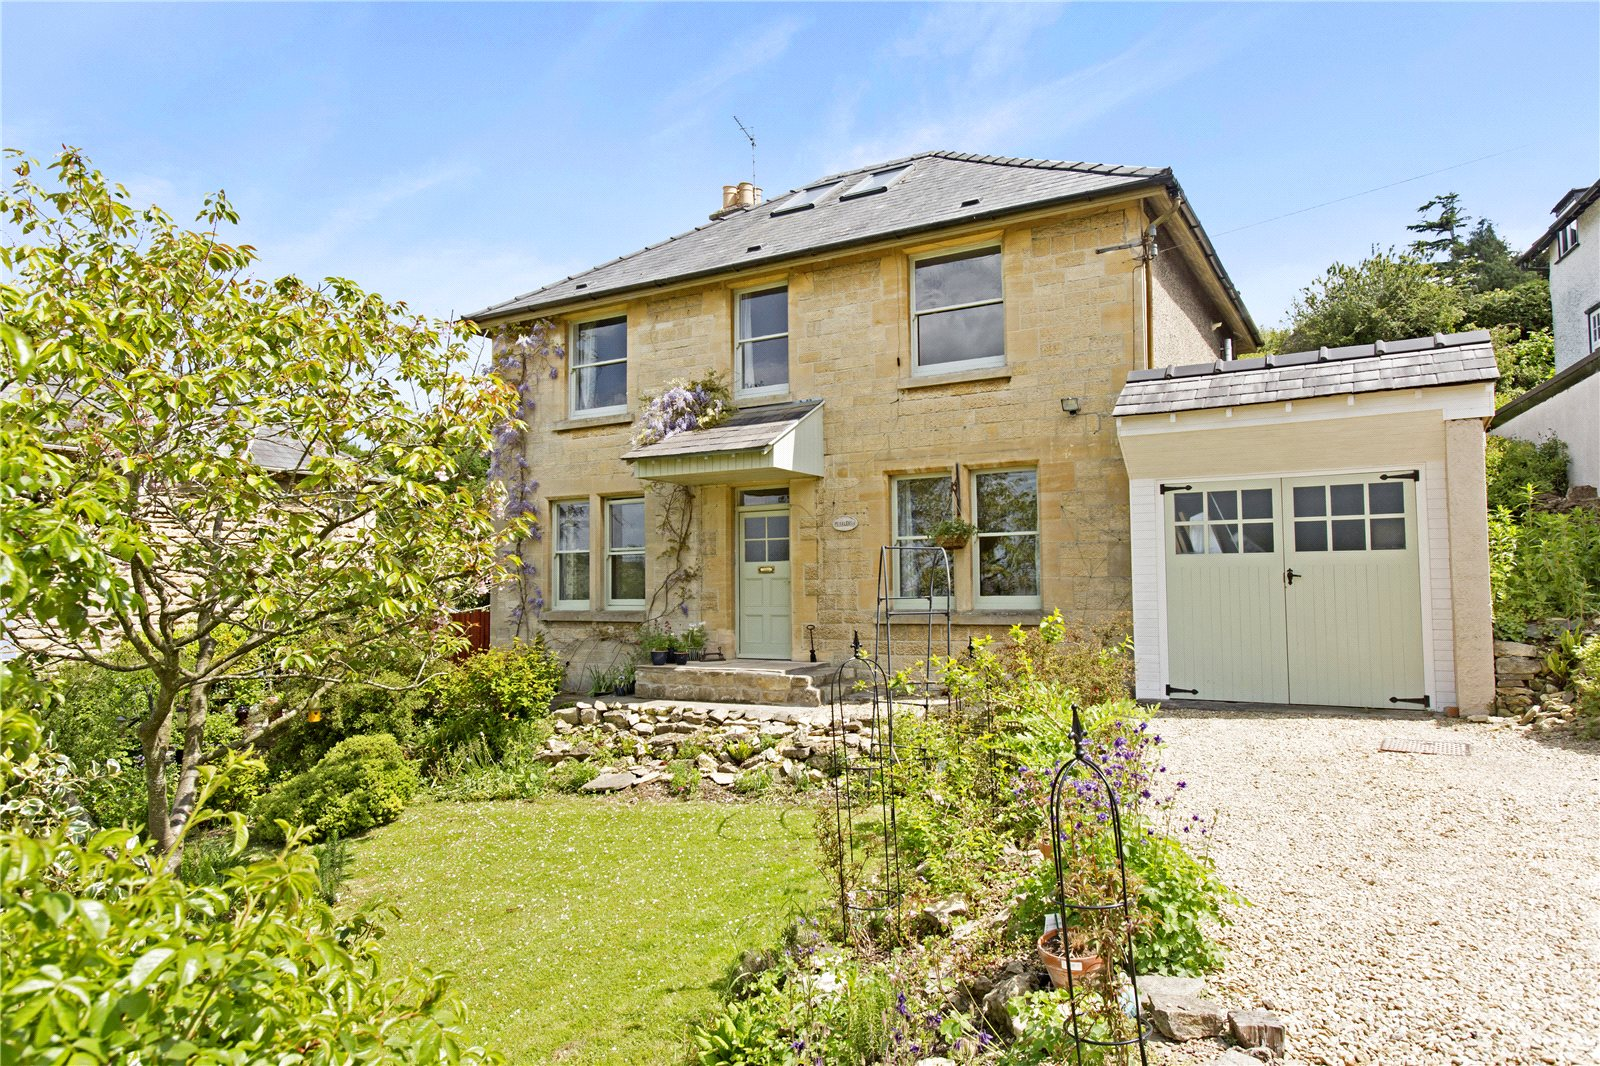 4 Bedrooms Detached House for sale in Post Office Lane Cleeve Hill Cheltenham GL52